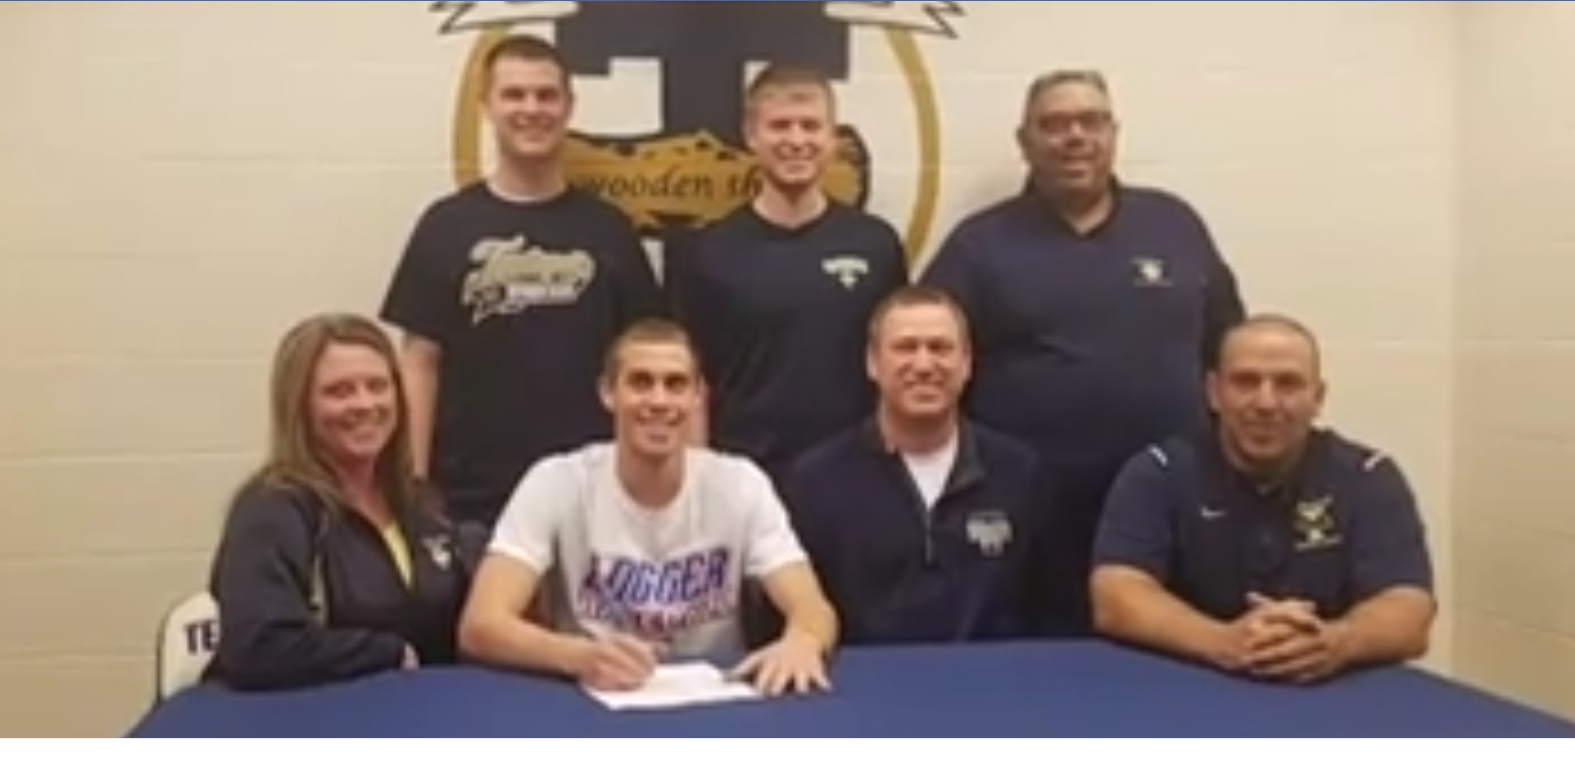 Local Teutopolis Pitcher Signs With Lincoln Land Community College.